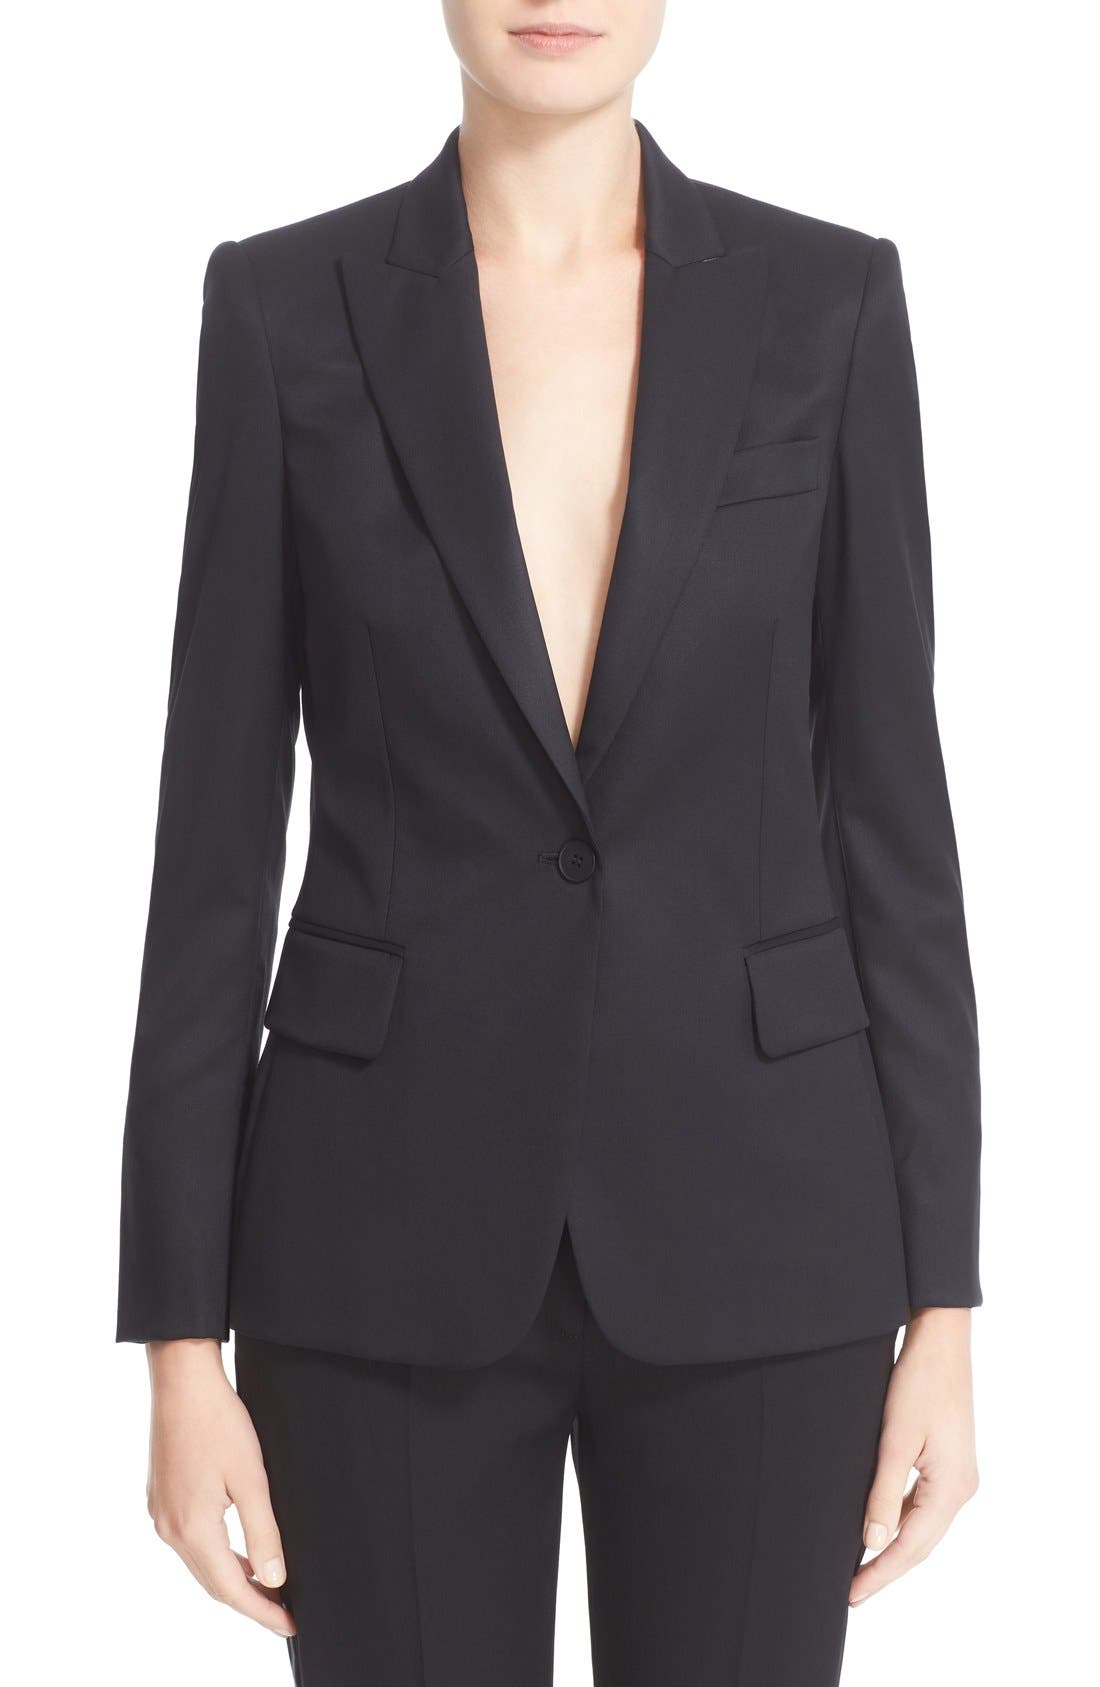 PS1 One-Button Wool Jacket,                         Main,                         color, Black